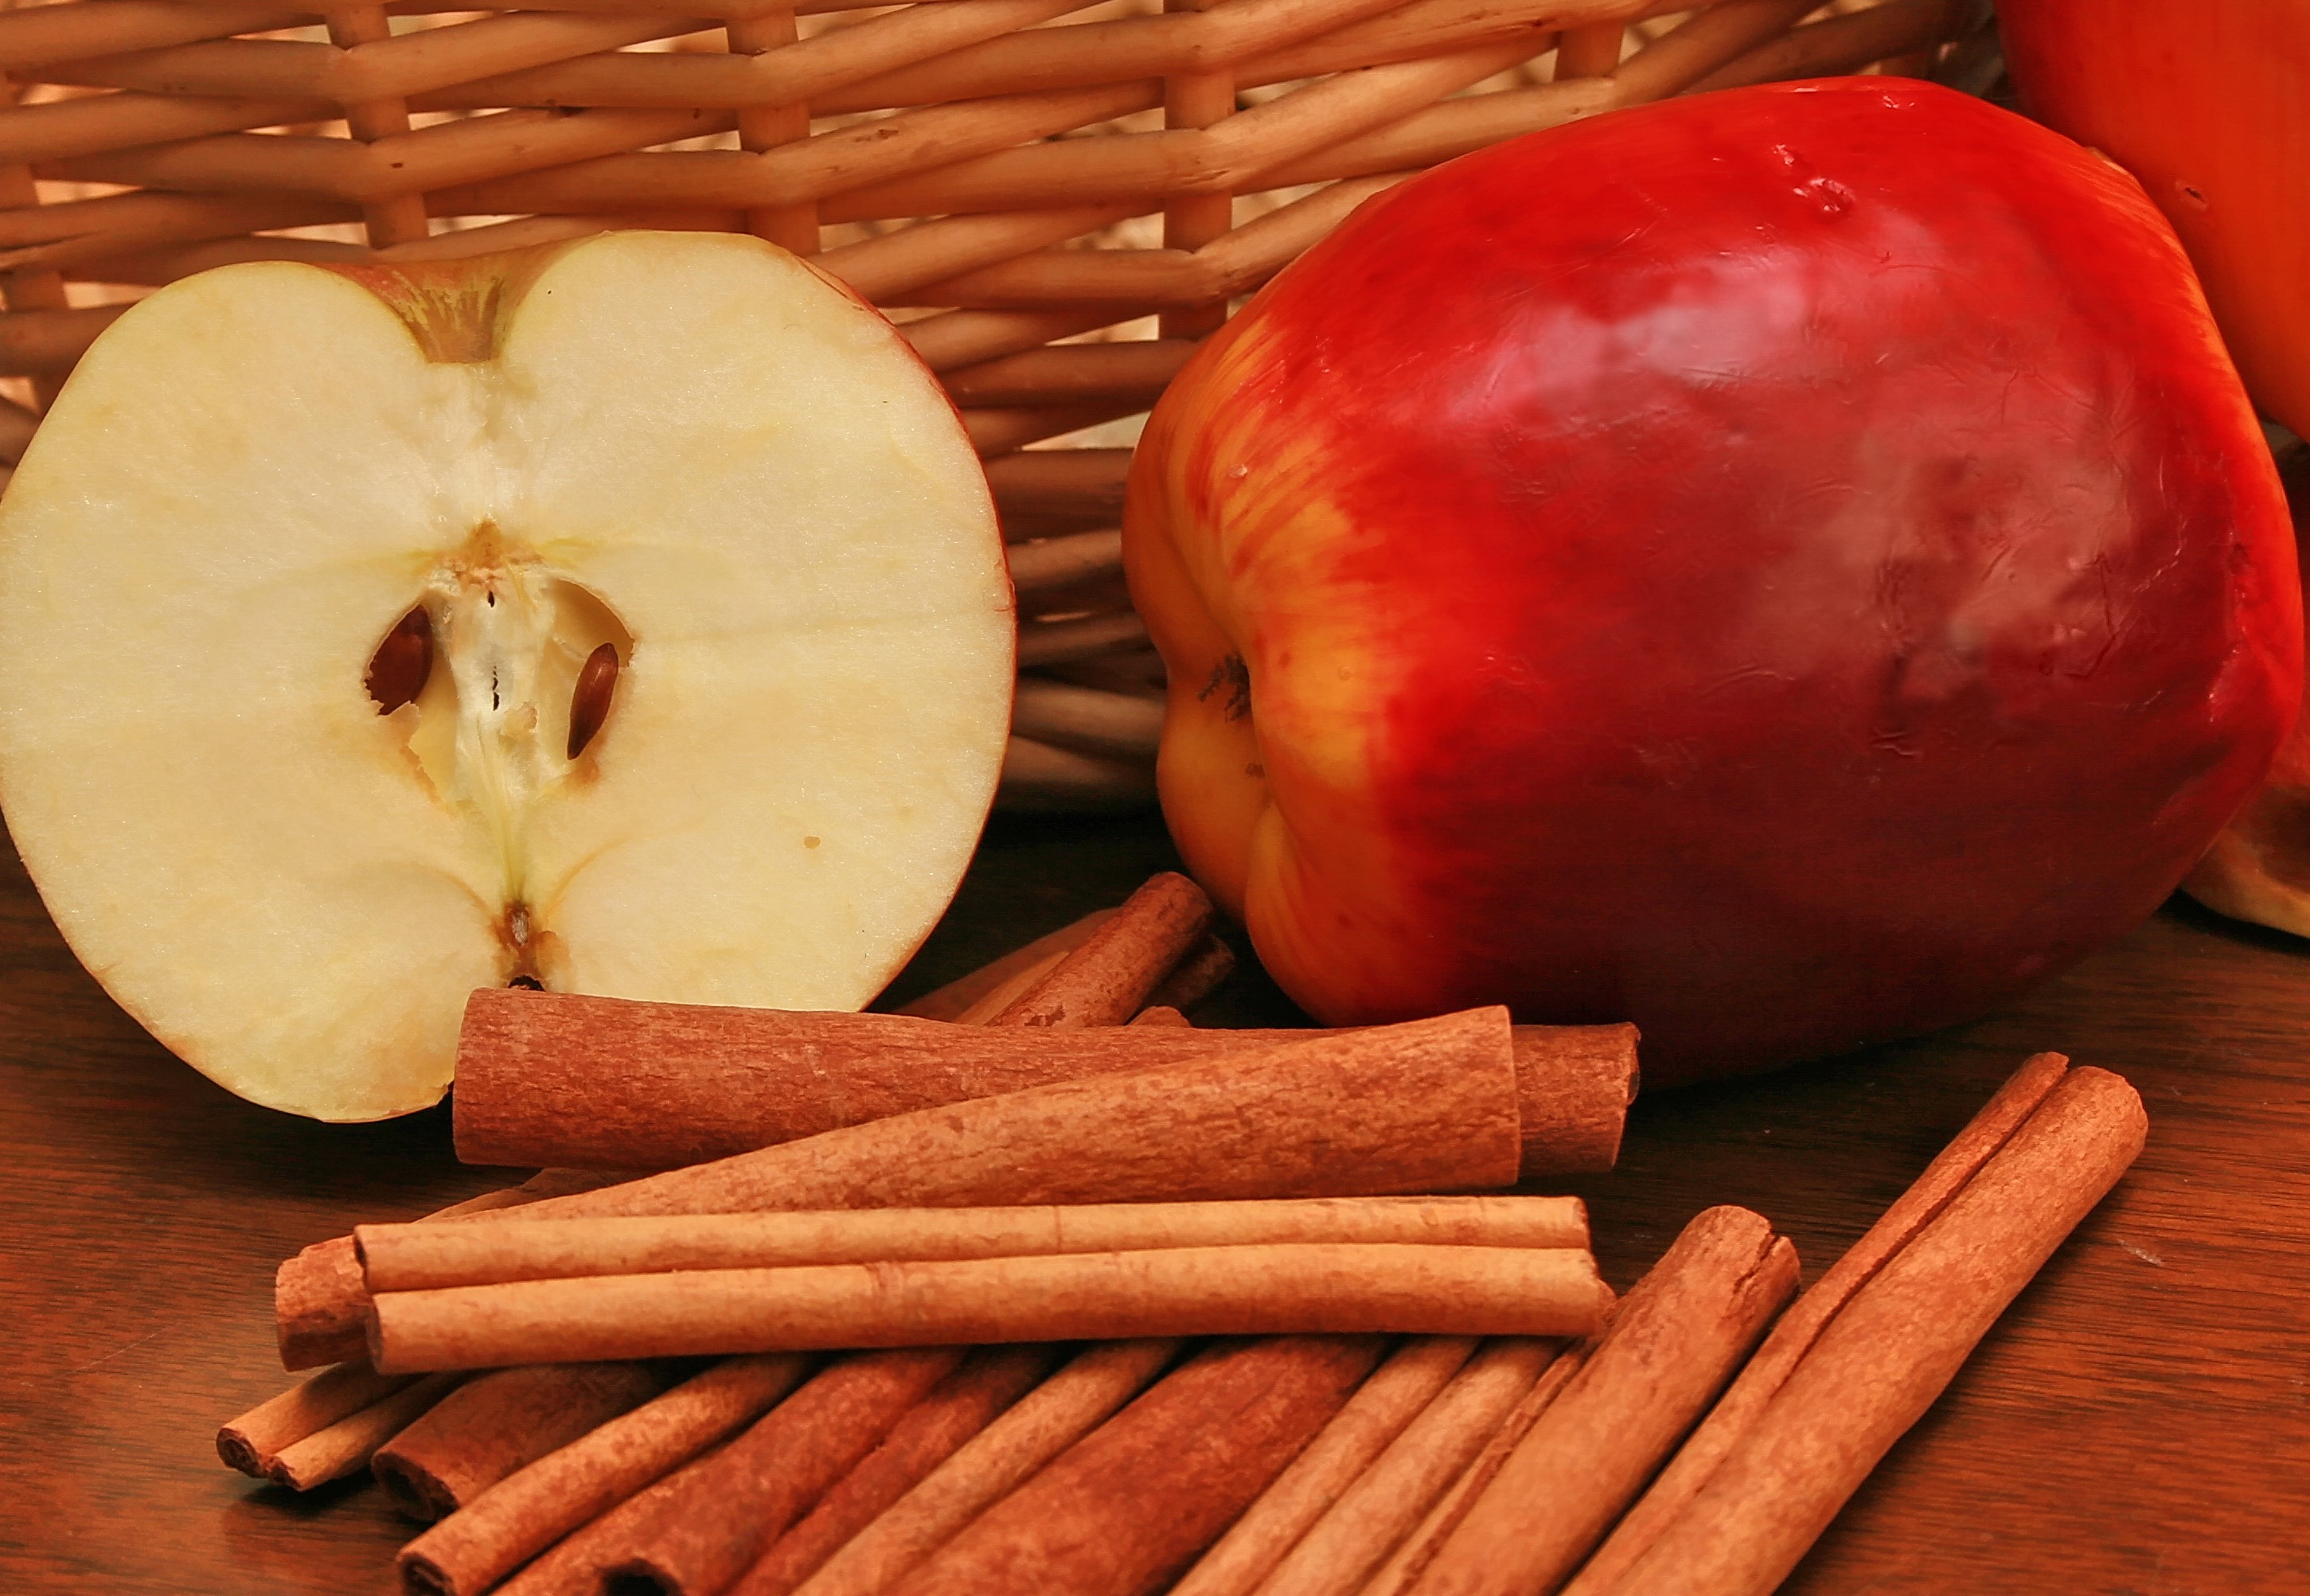 Apple-and-Cinnamon.jpg